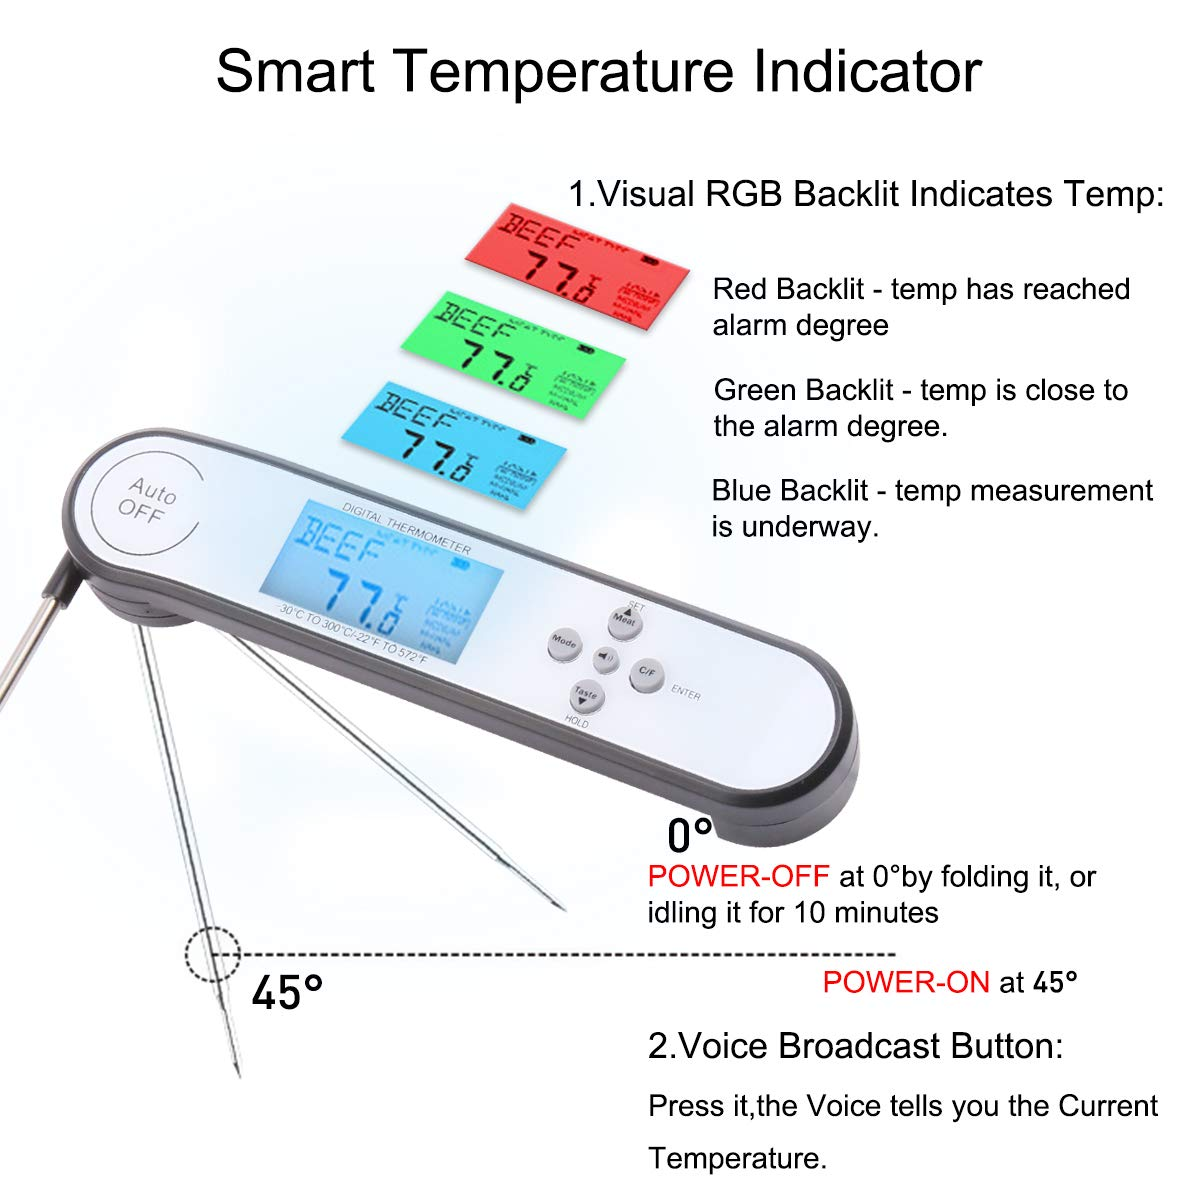 Meat Thermometer Instant Read Digital Thermometer with Voice - NEWEST IP66 Waterproof Grill Candy Thermometer - Food BBQ Thermometer Backlit Temp Gauge for Kitchen Cooking Smoker Deep Fry Oil (White)